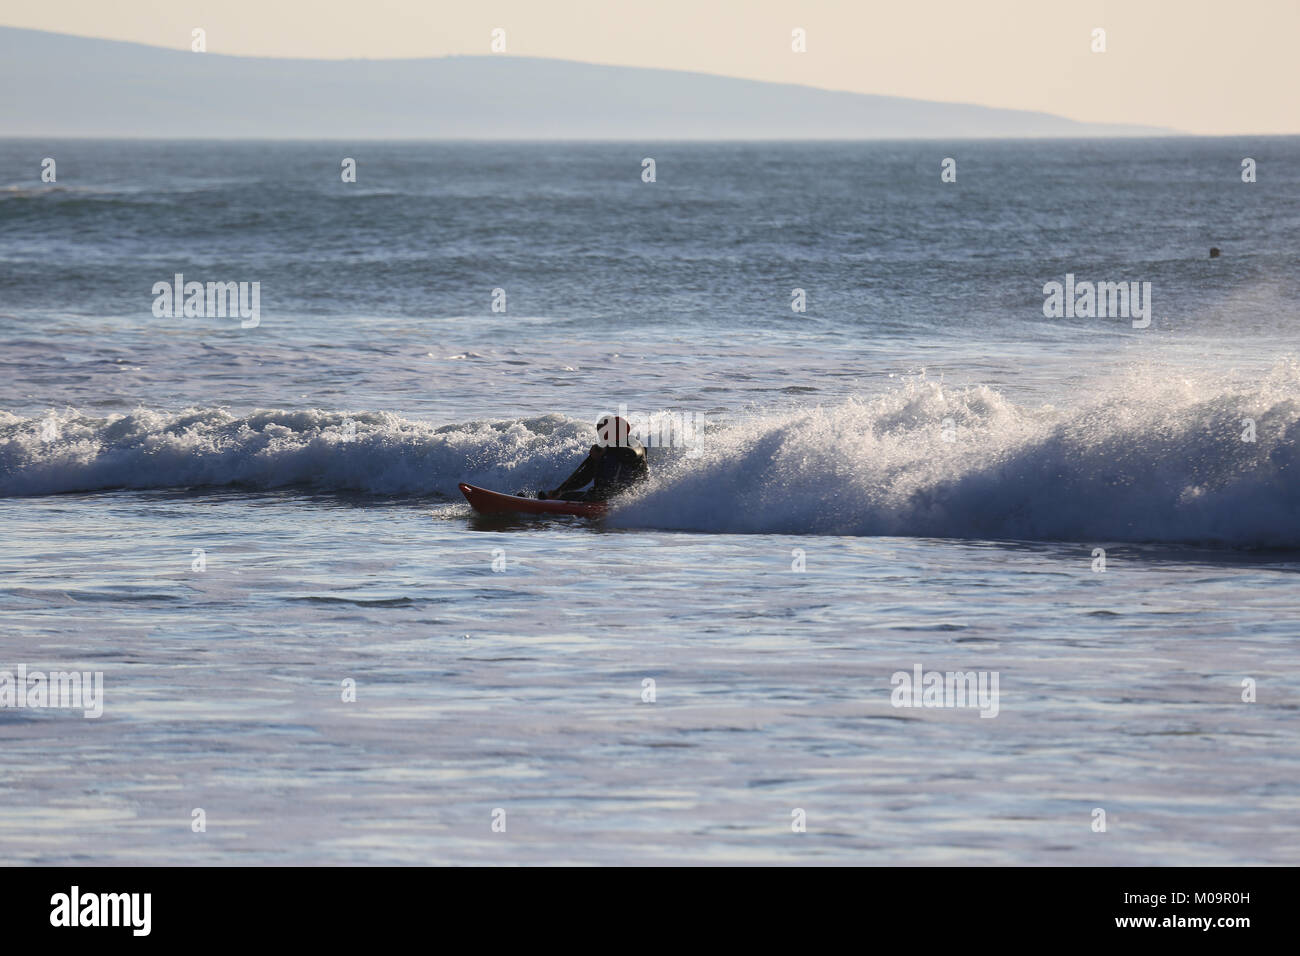 Surfer out surfing on The Wild Atlantic Way - Stock Image